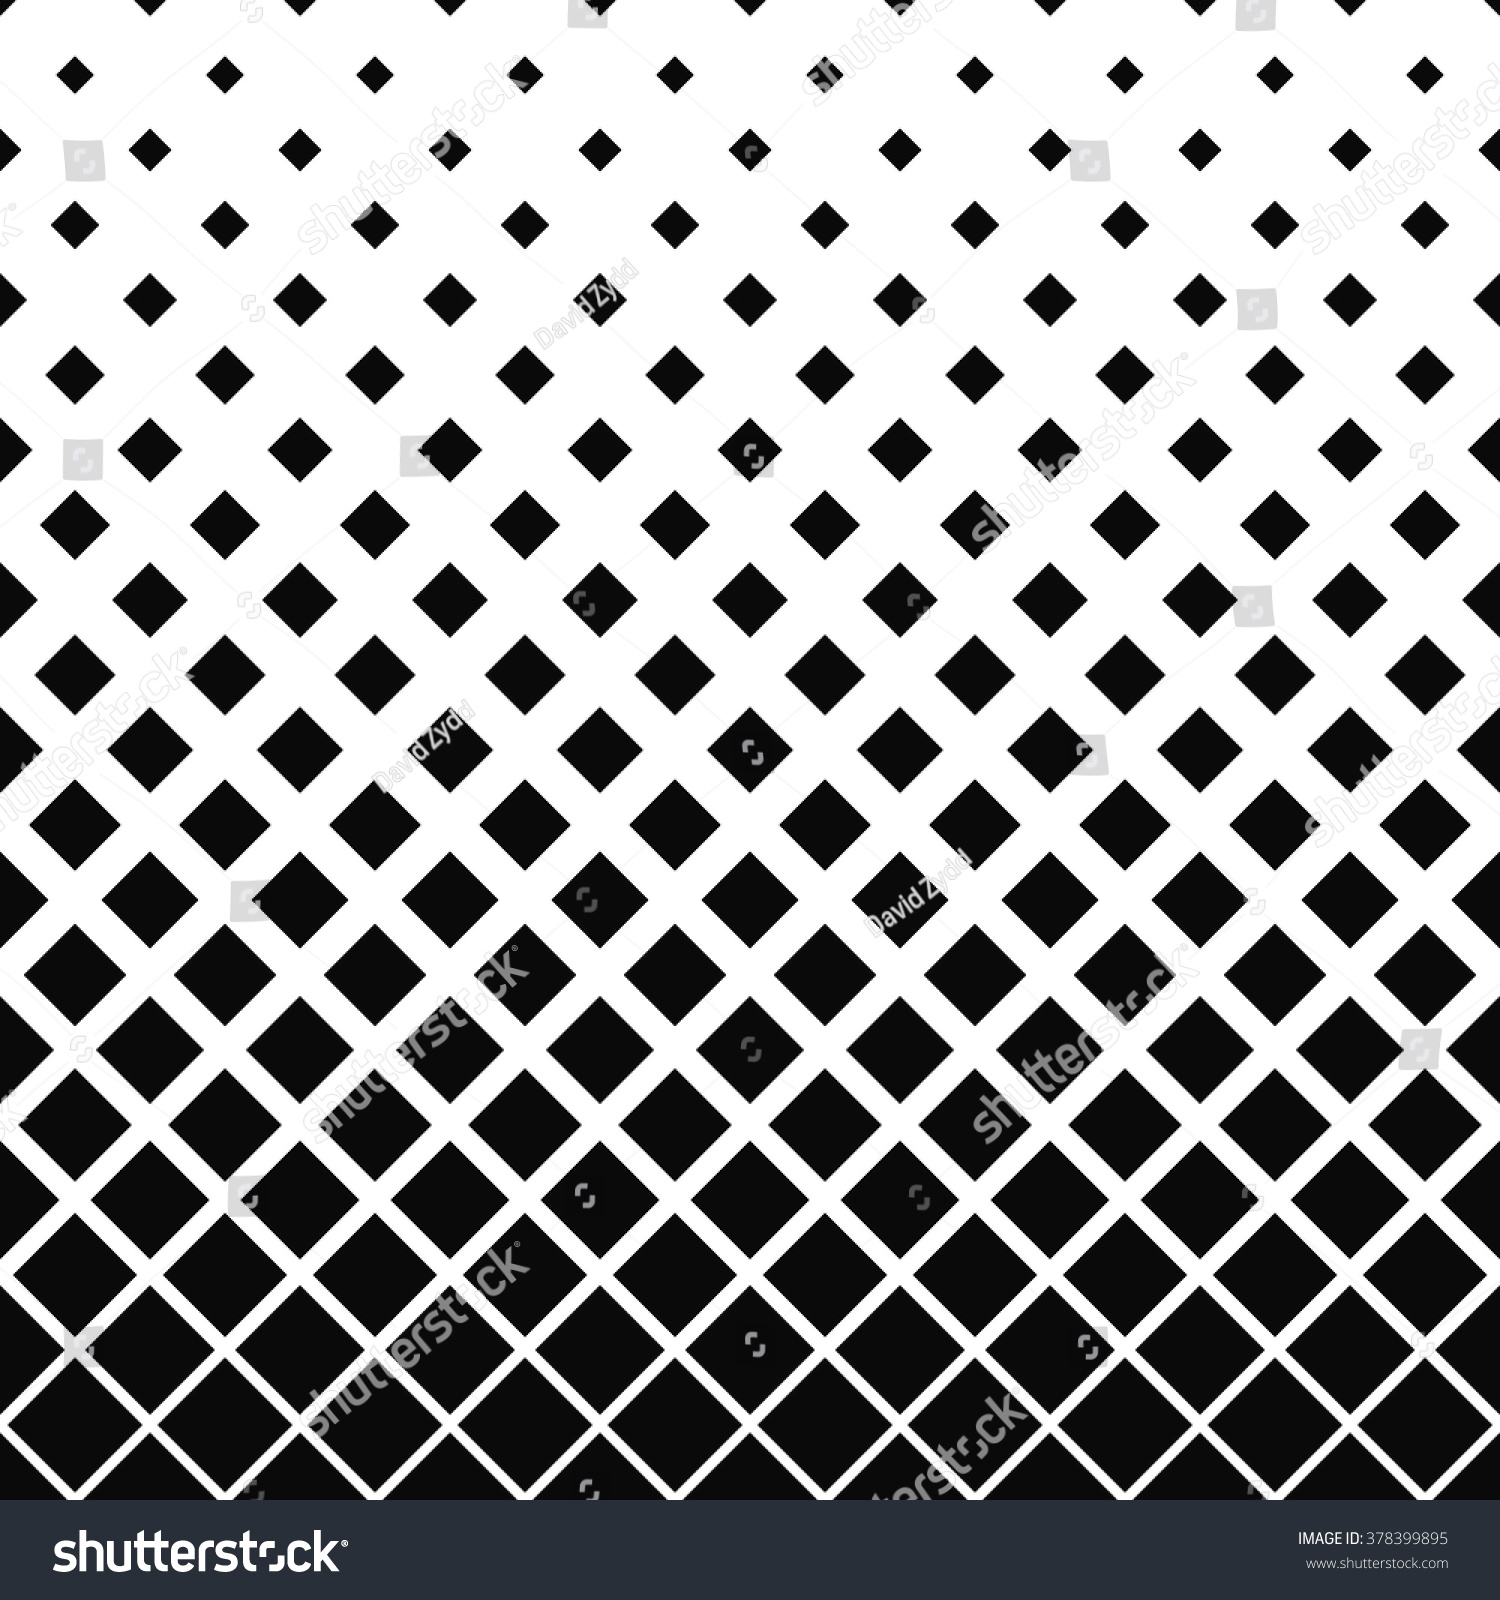 Repeating black and white vector square pattern design background 378399895 shutterstock - Any design using black and white ...